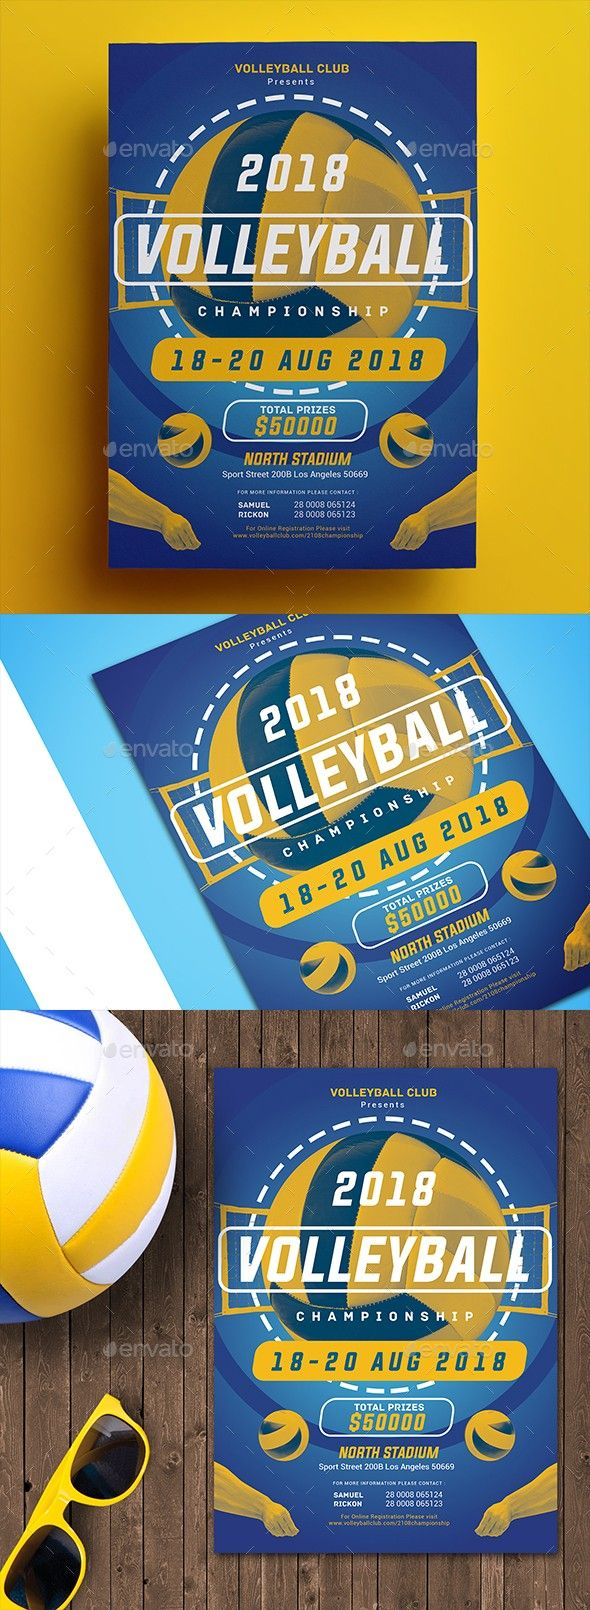 Volleyball Championship Flyer Volleyball Flyer Event Logo